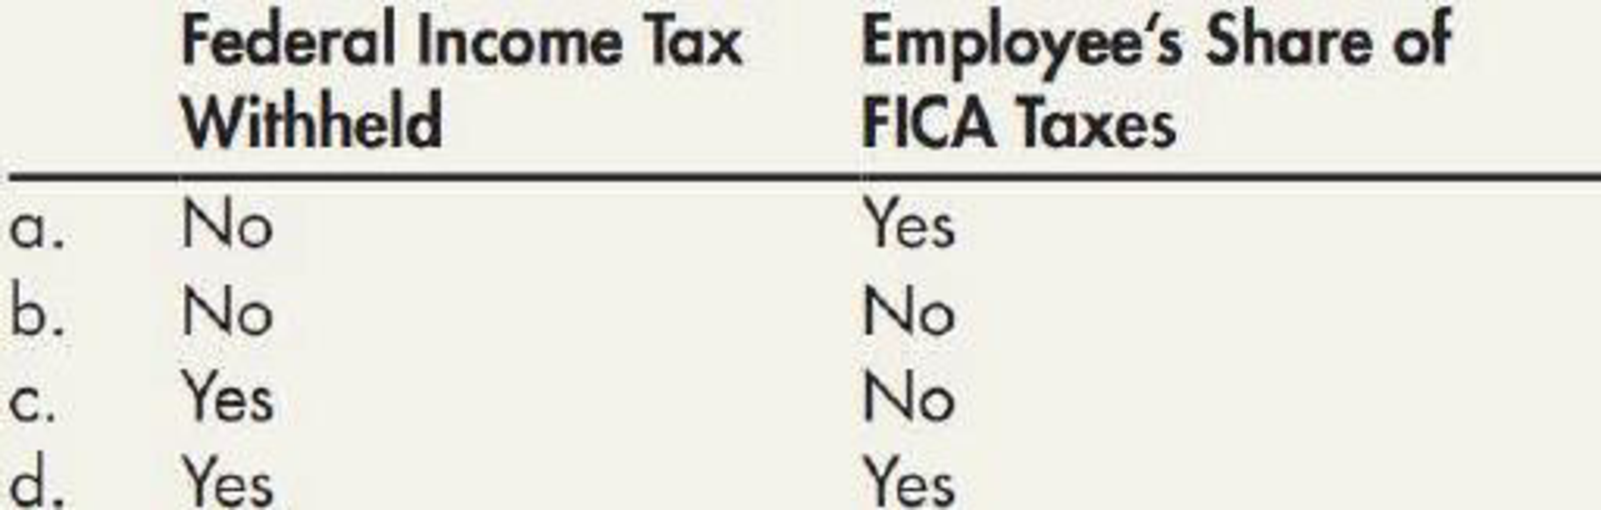 Chapter 9, Problem 7MC, Which of the following is classified as an accrued payroll liability?